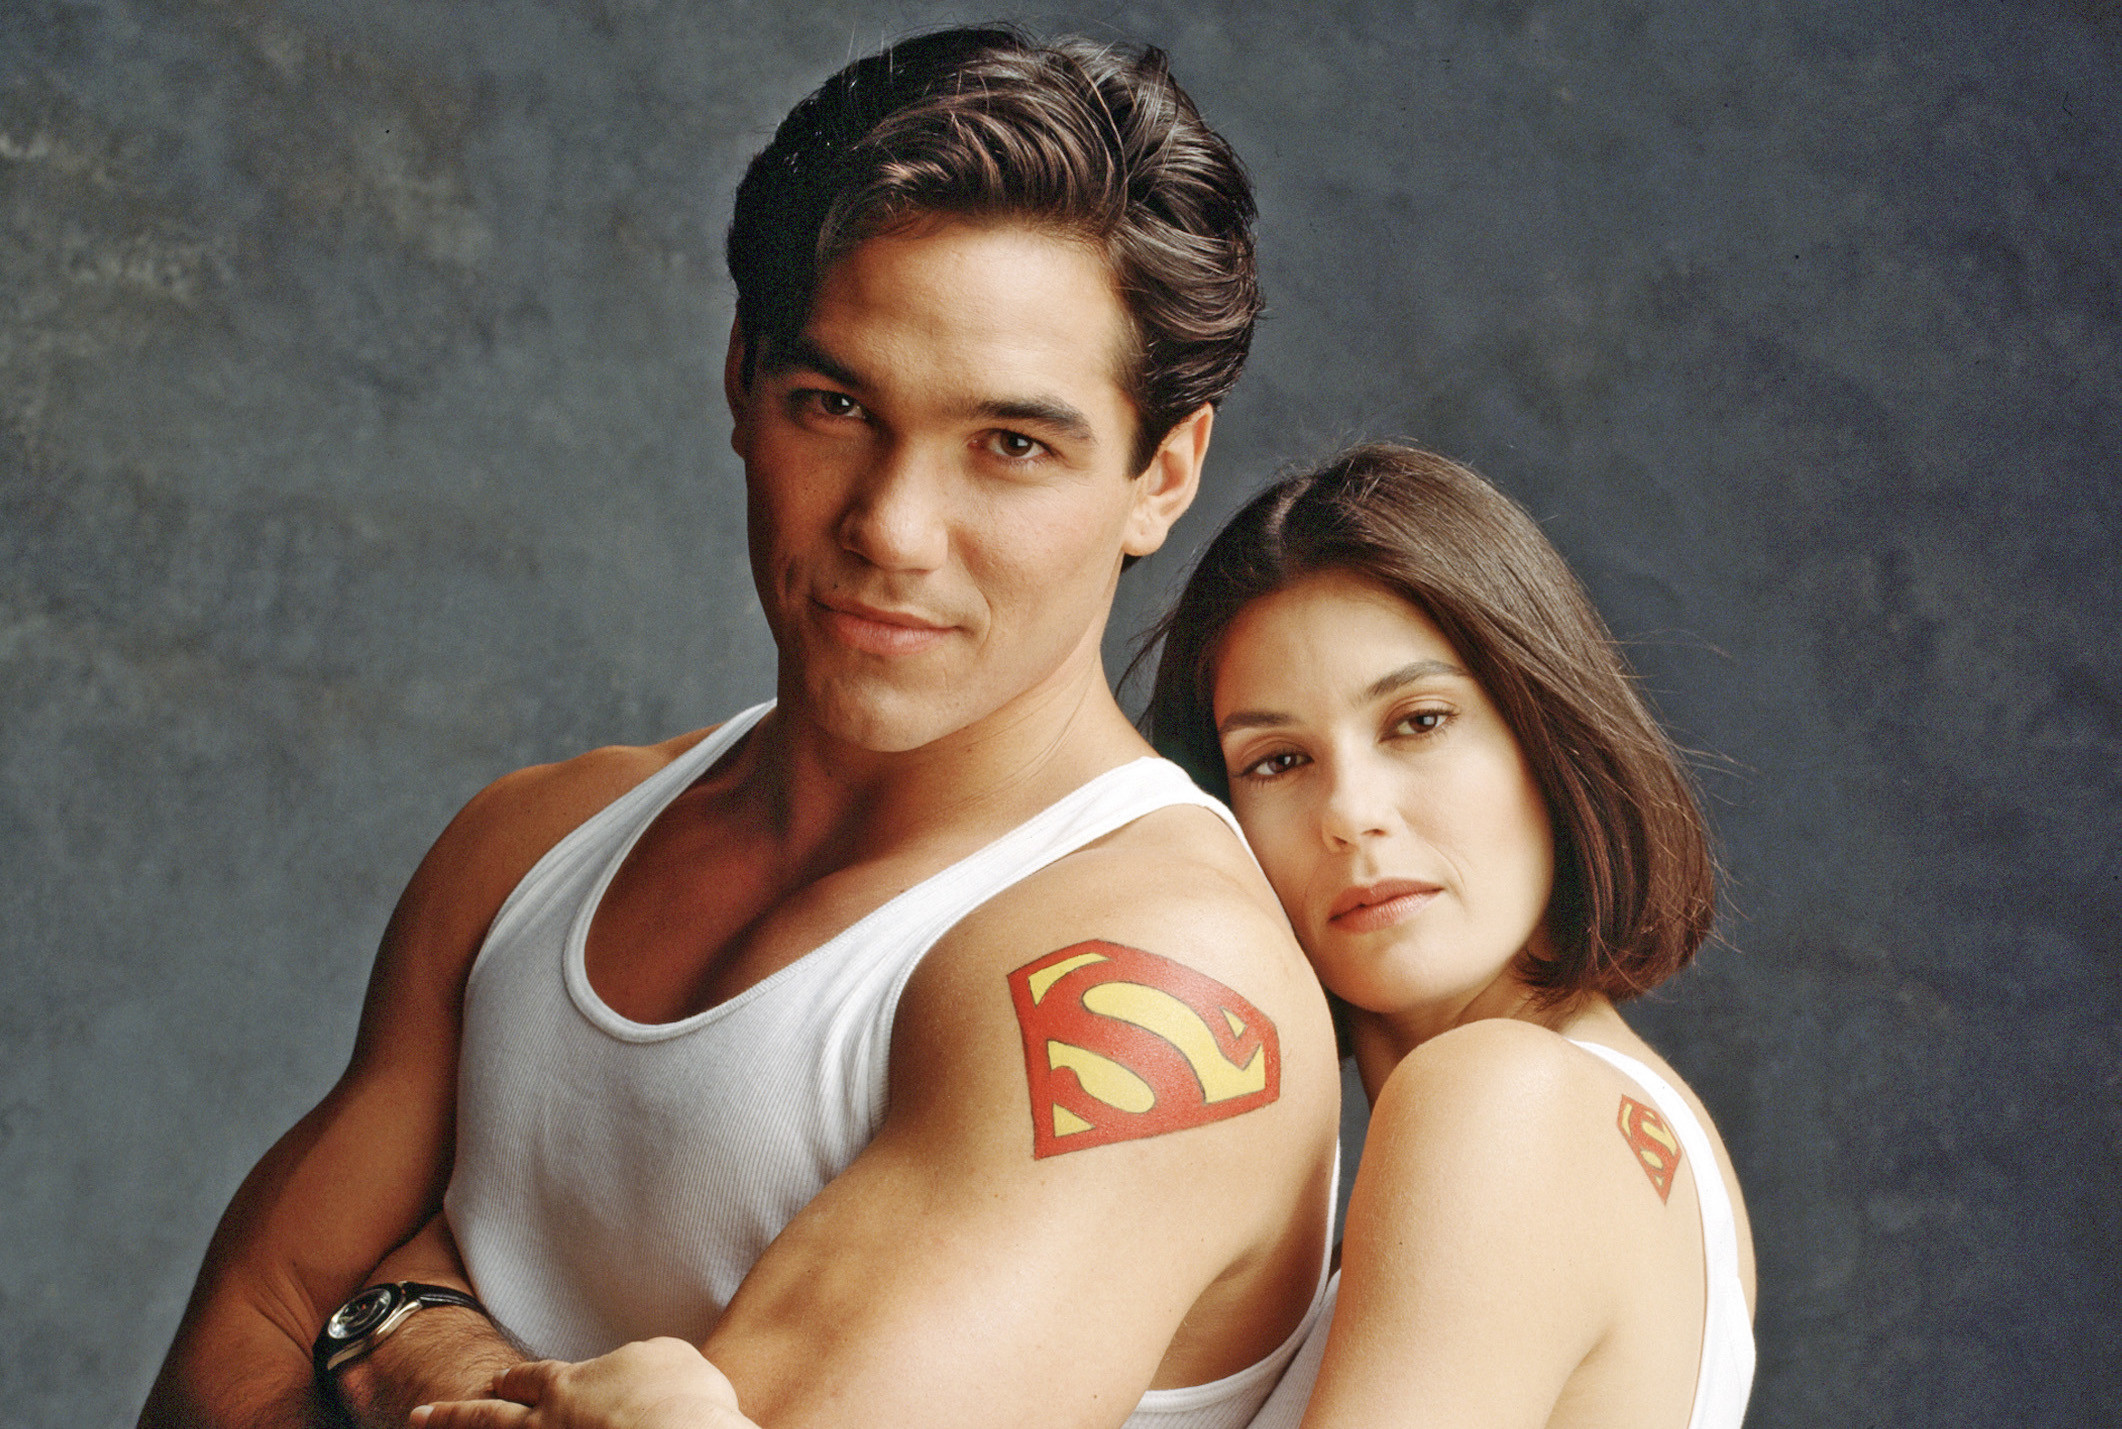 Lois and clark redhead actress superman